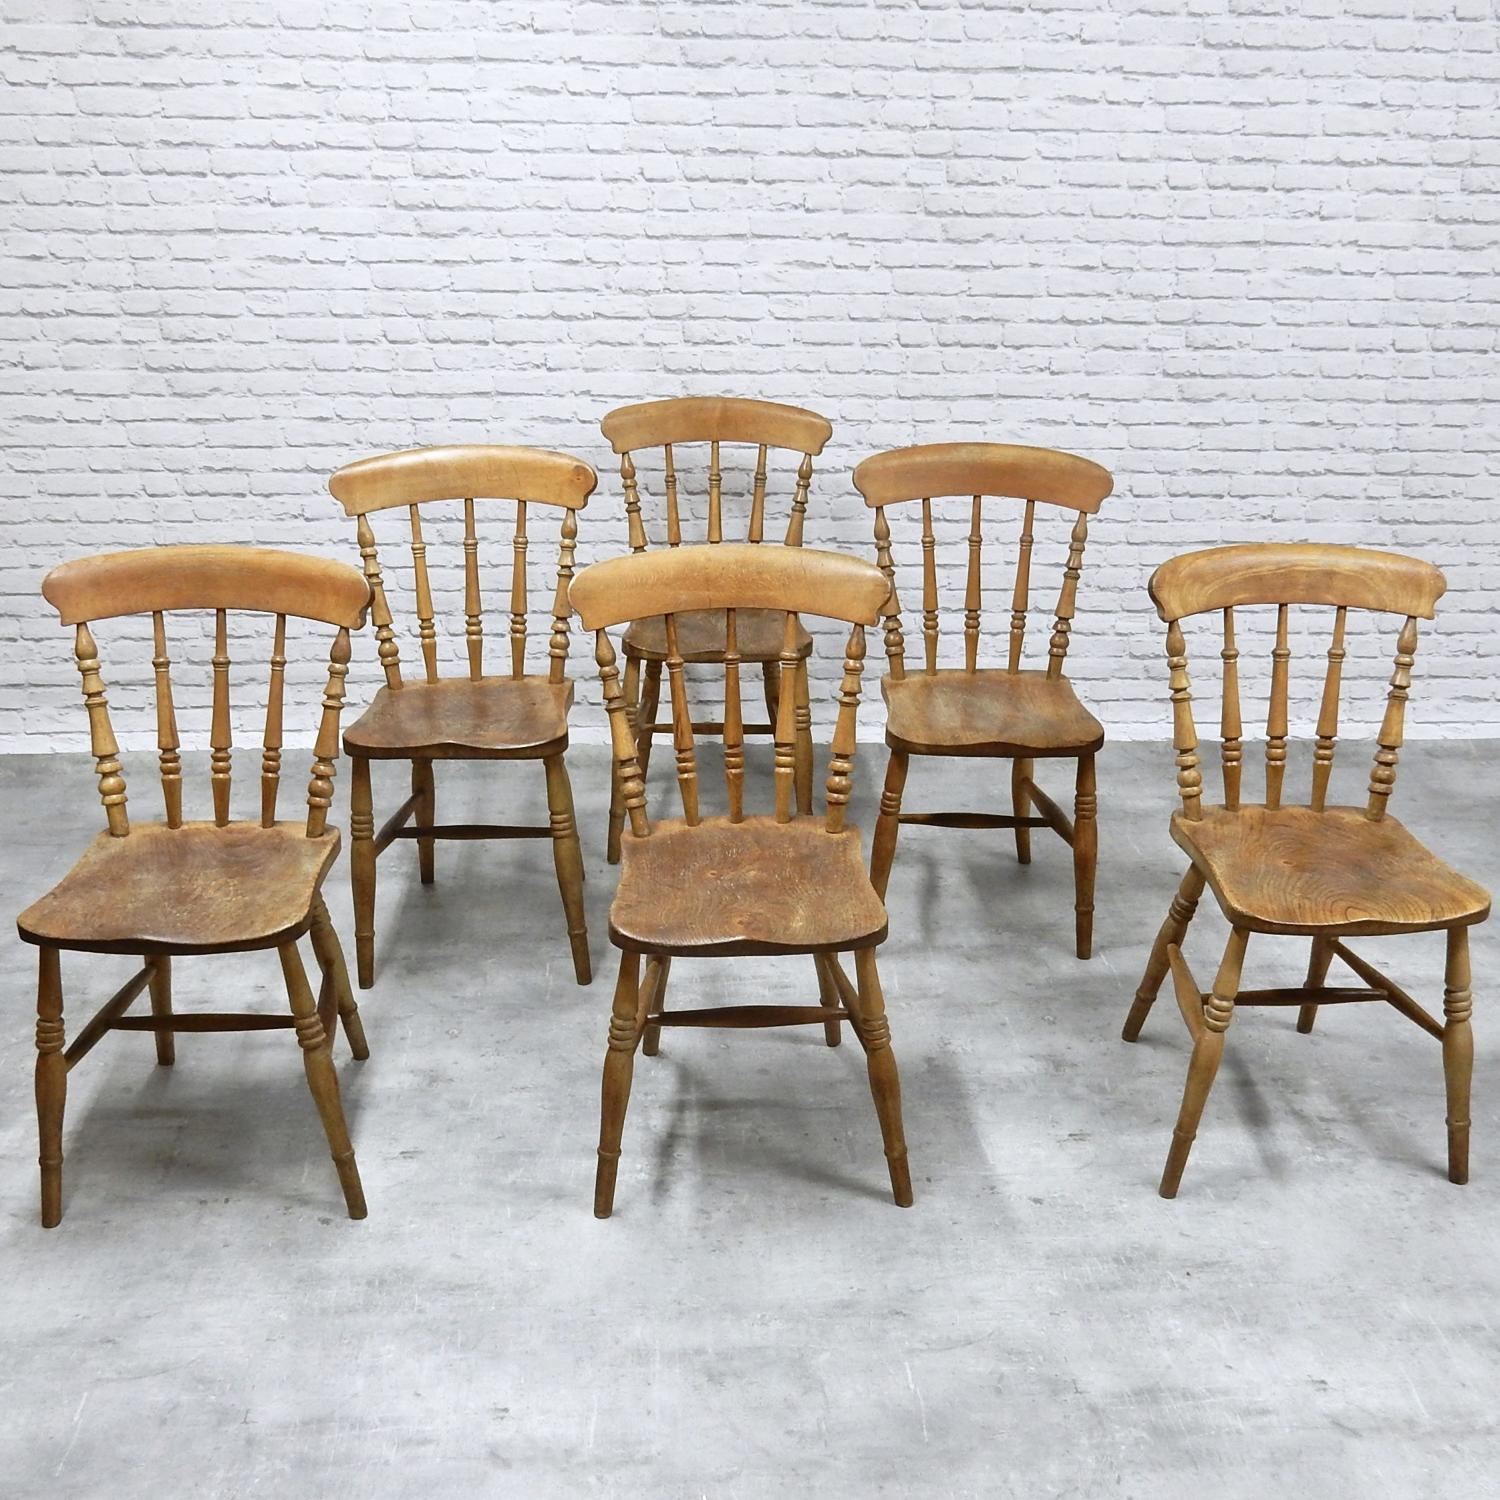 Antique Country Kitchen Chairs